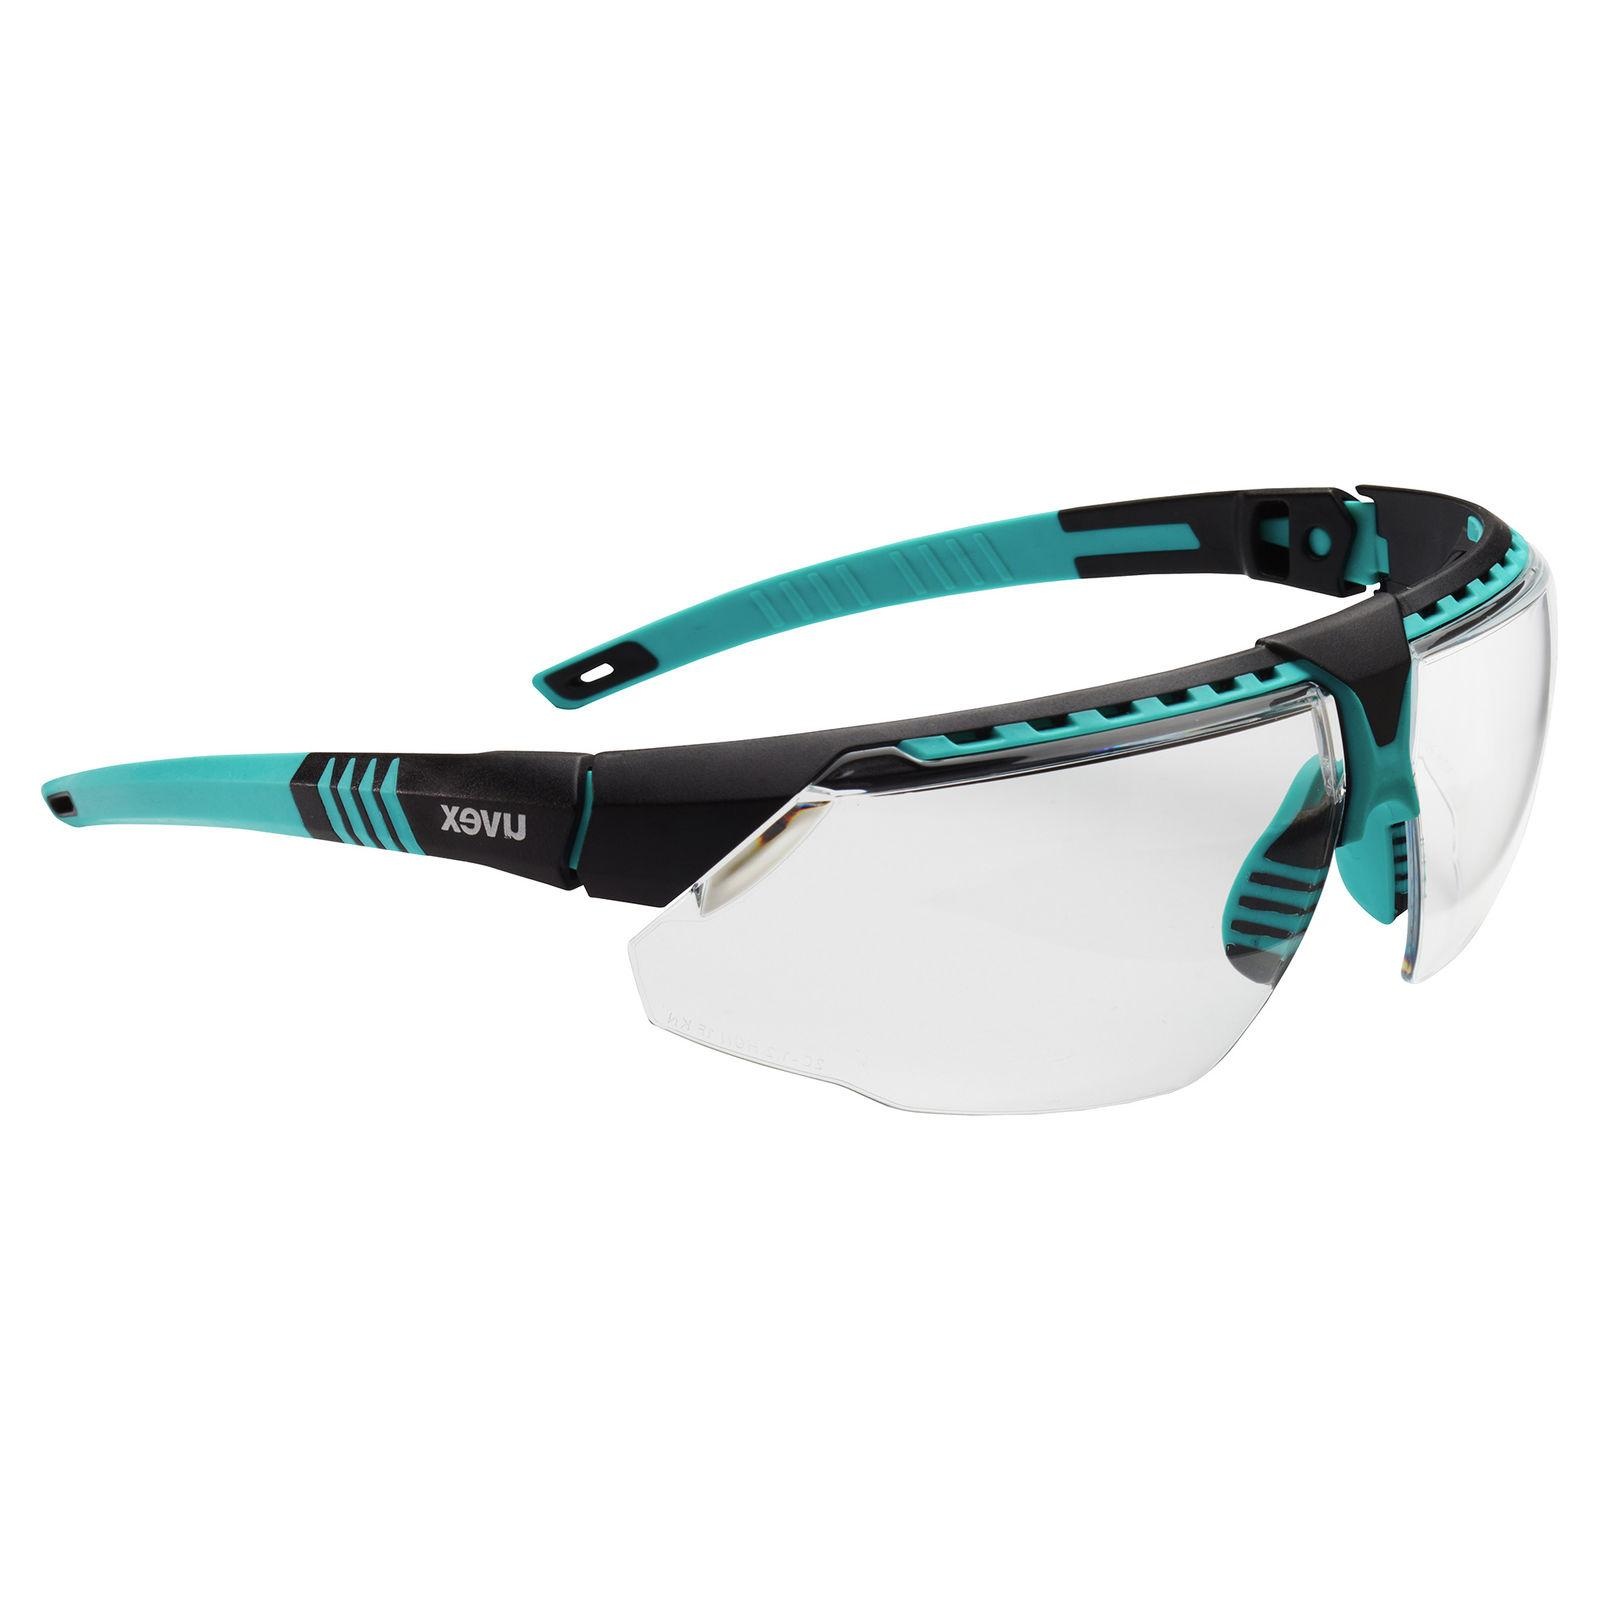 Uvex Avatar Safety Glasses with Clear Lens, Teal Frame